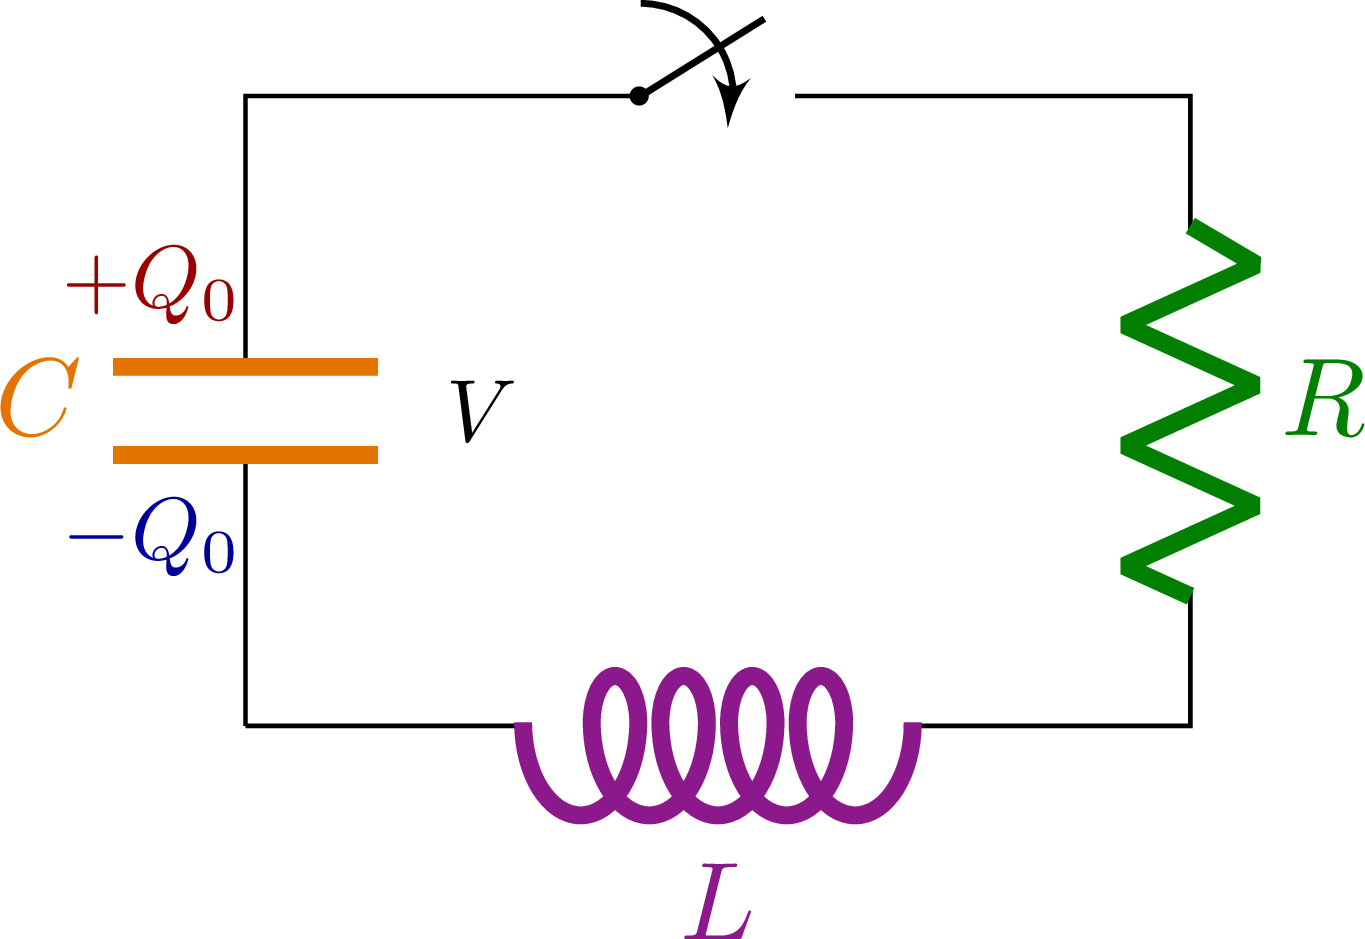 electric_circuit_rcl-004.png